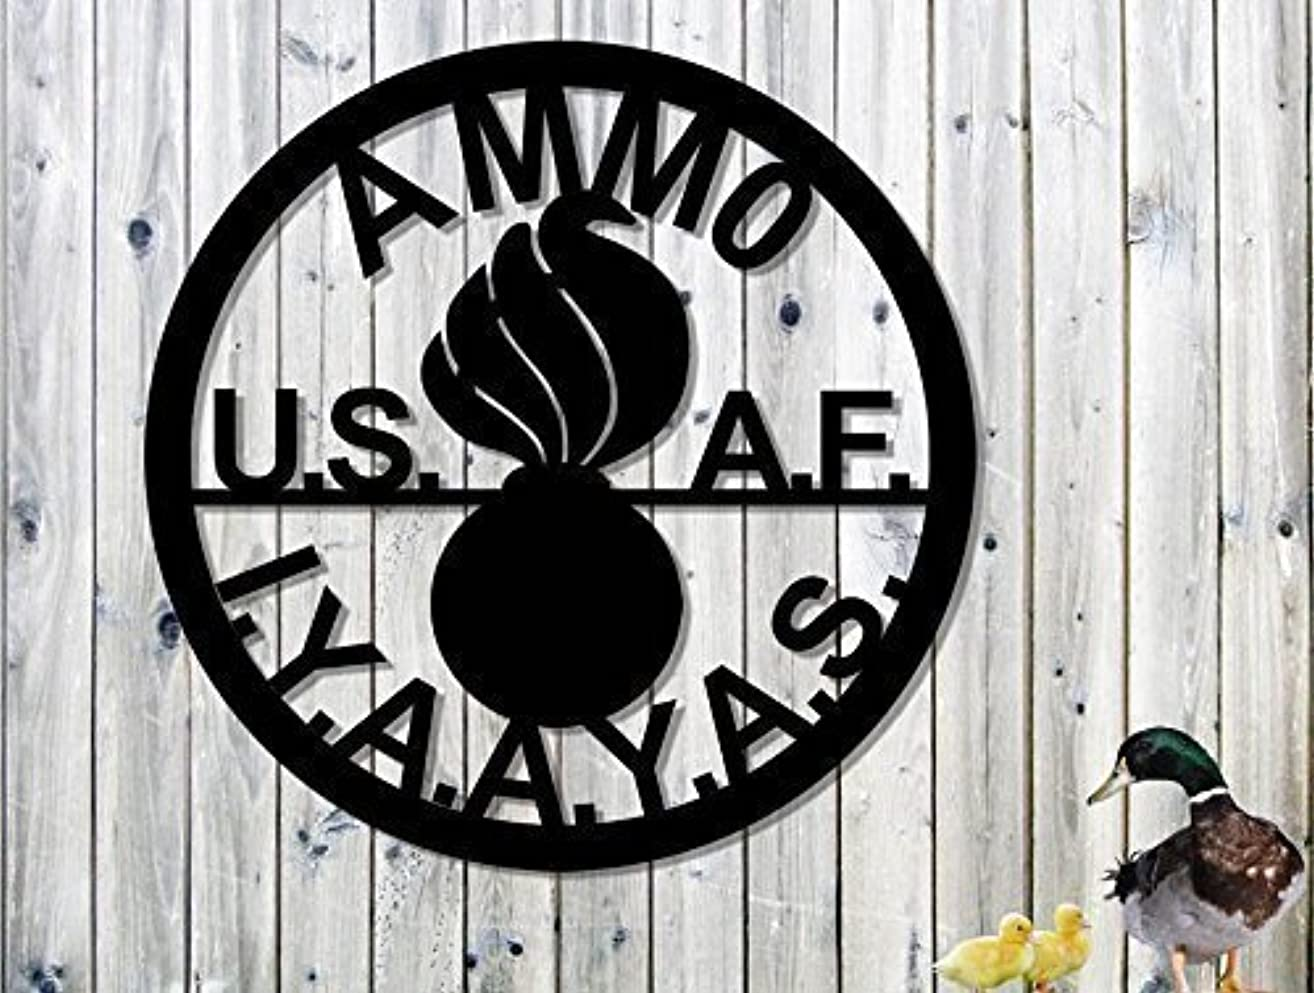 AMMO - IYAAYAS - US Air Force - Metal Sign - Steel Sign 23 x 23 Inches LARGE SIGN Unique Fathers Day Gift